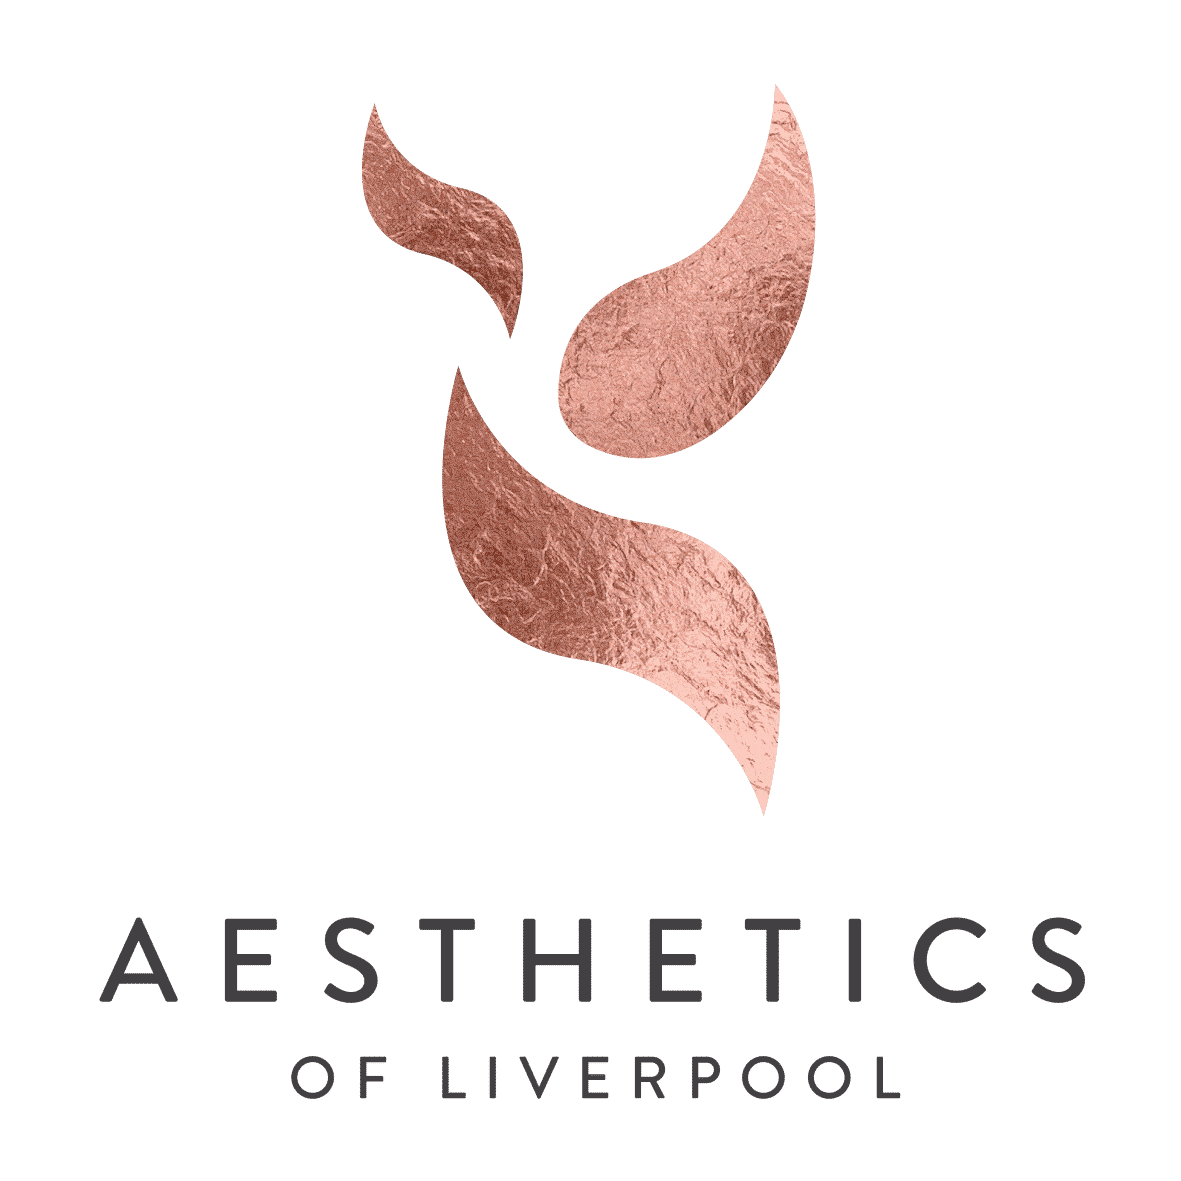 Aesthetics of Liverpool Metallic Logo